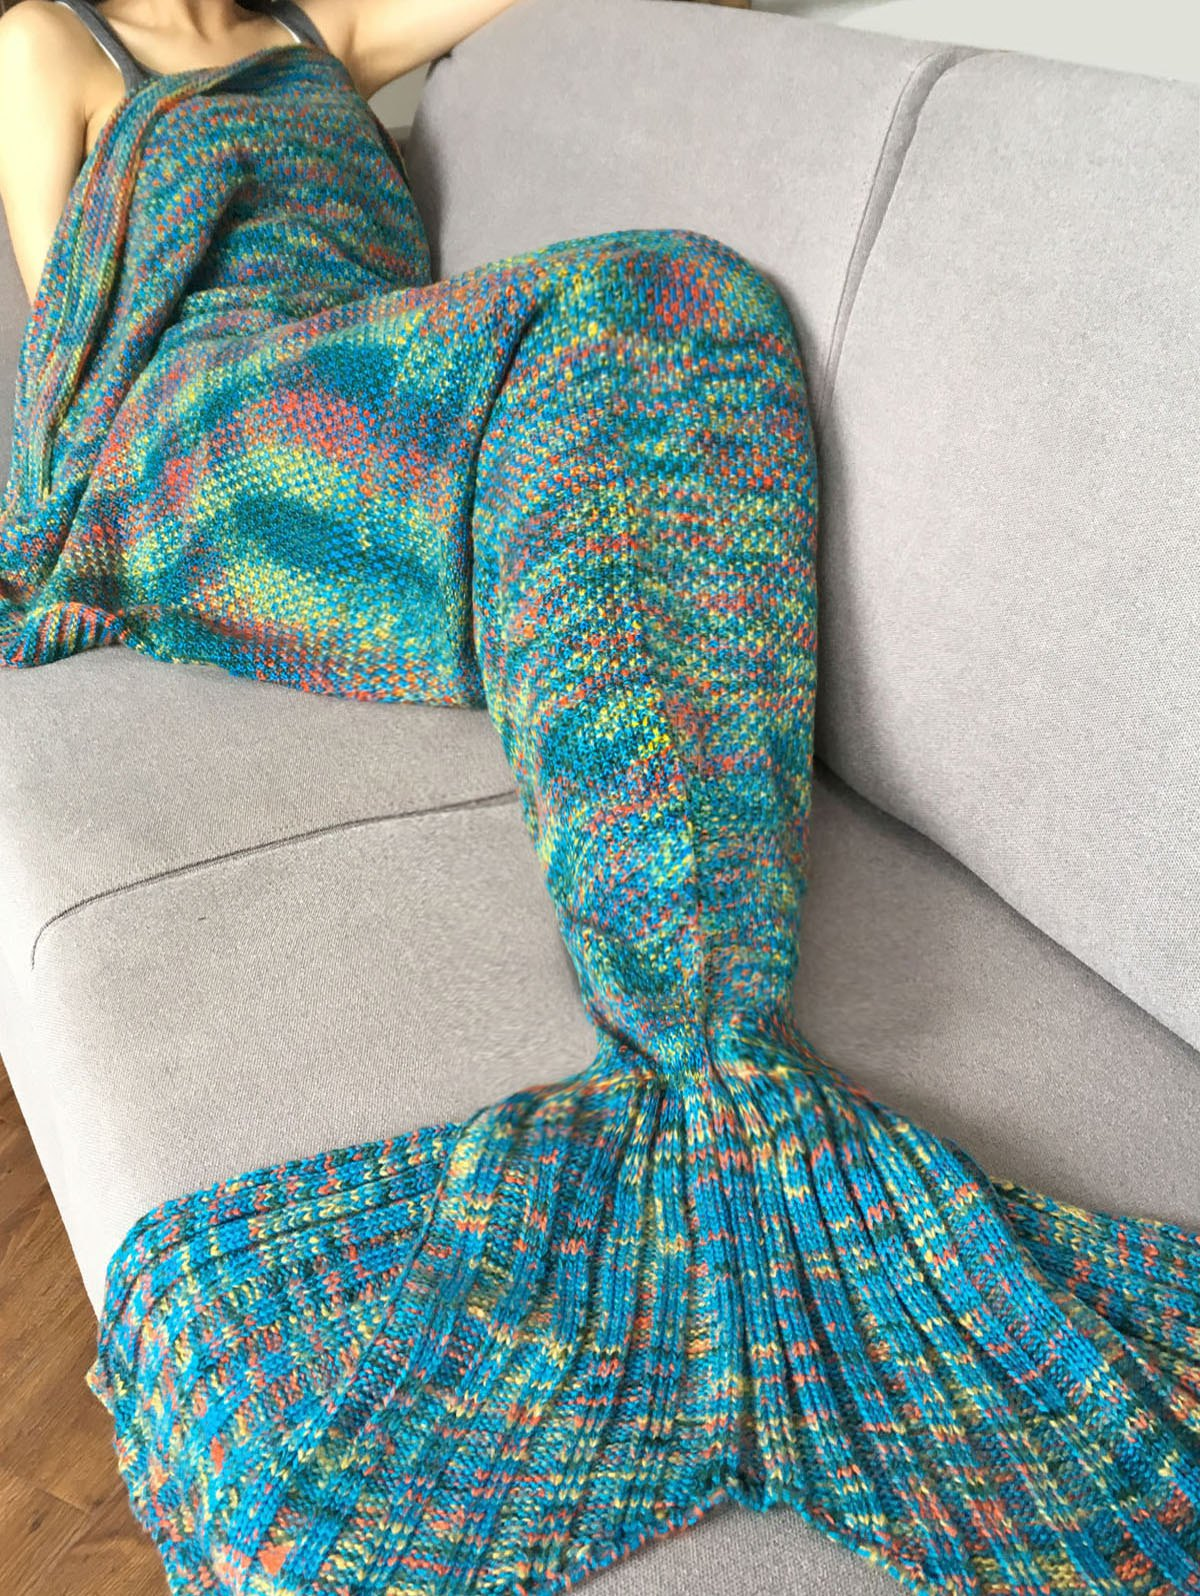 Online Fashion Crochet Knitted Super Soft Mermaid Tail Shape Blanket For Adult